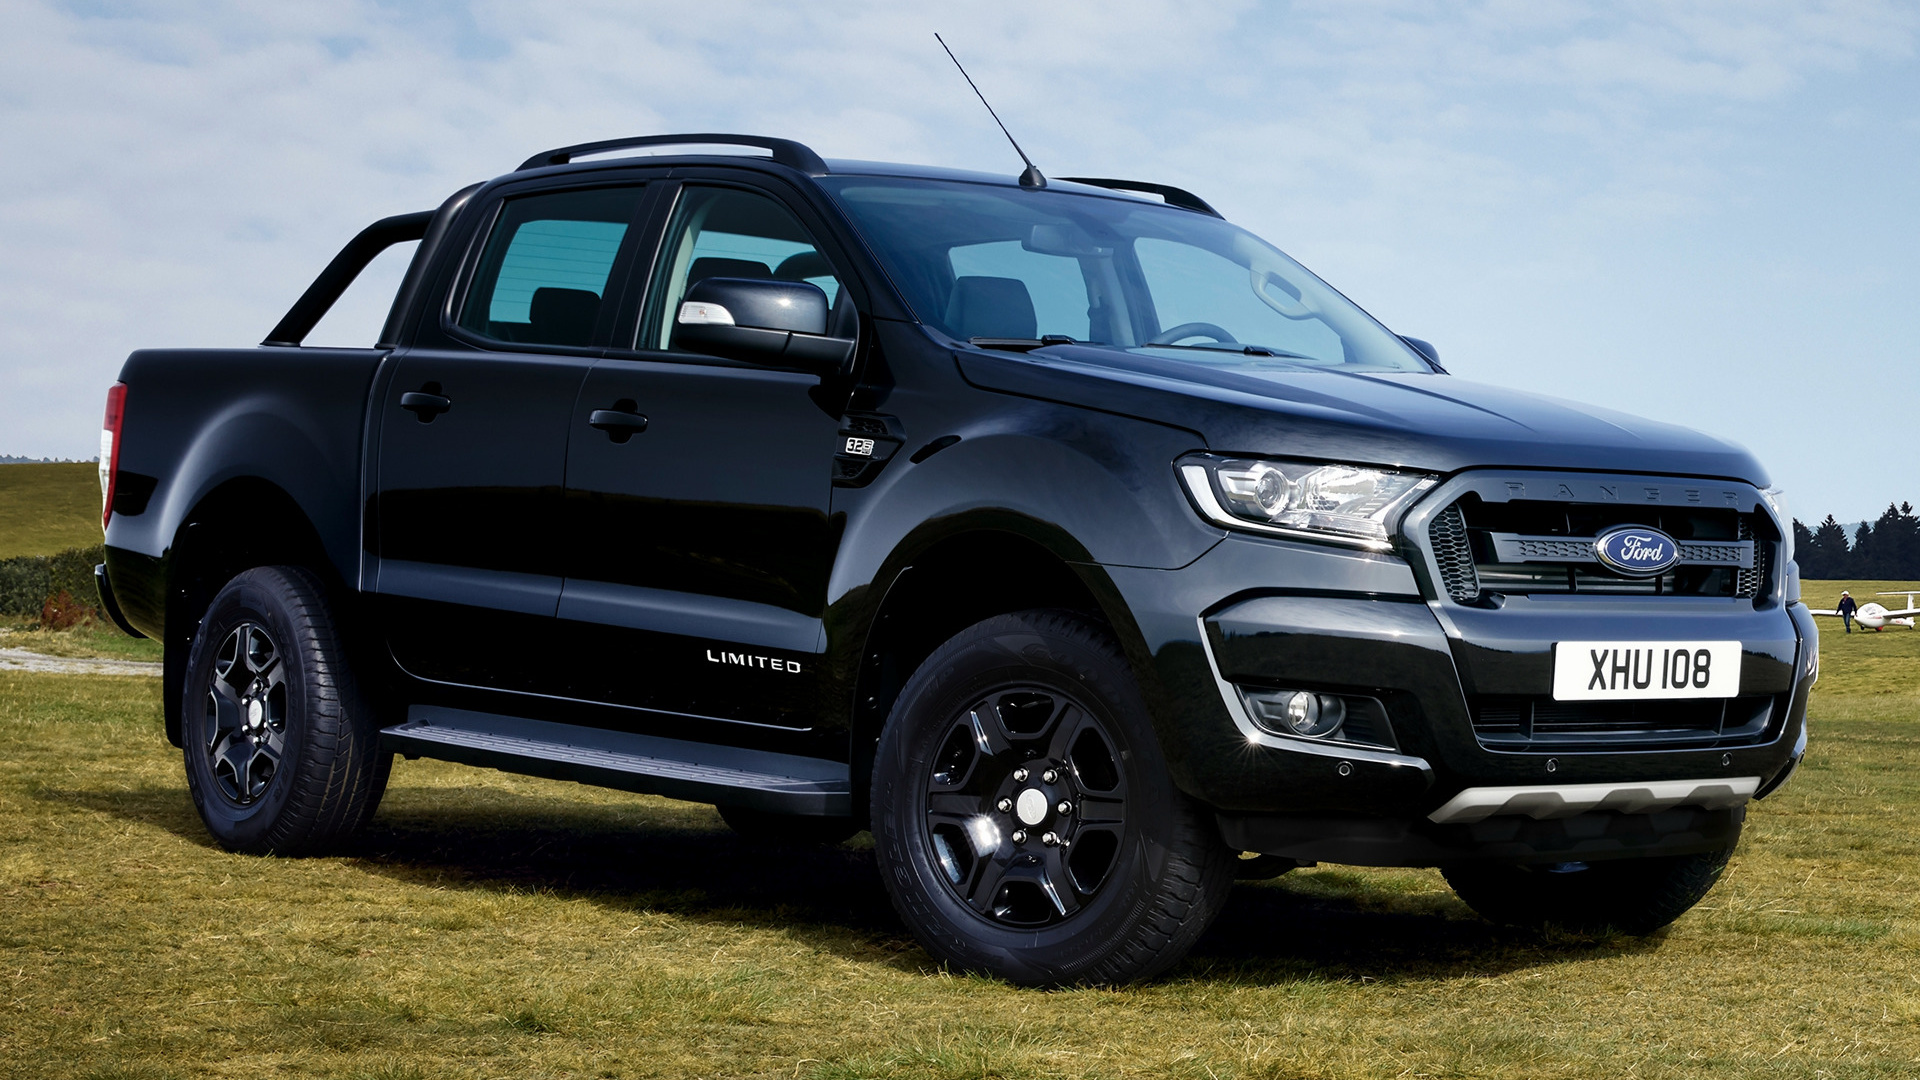 2017 ford ranger limited double cab hd wallpaper background image 1920x1080 id 898018. Black Bedroom Furniture Sets. Home Design Ideas